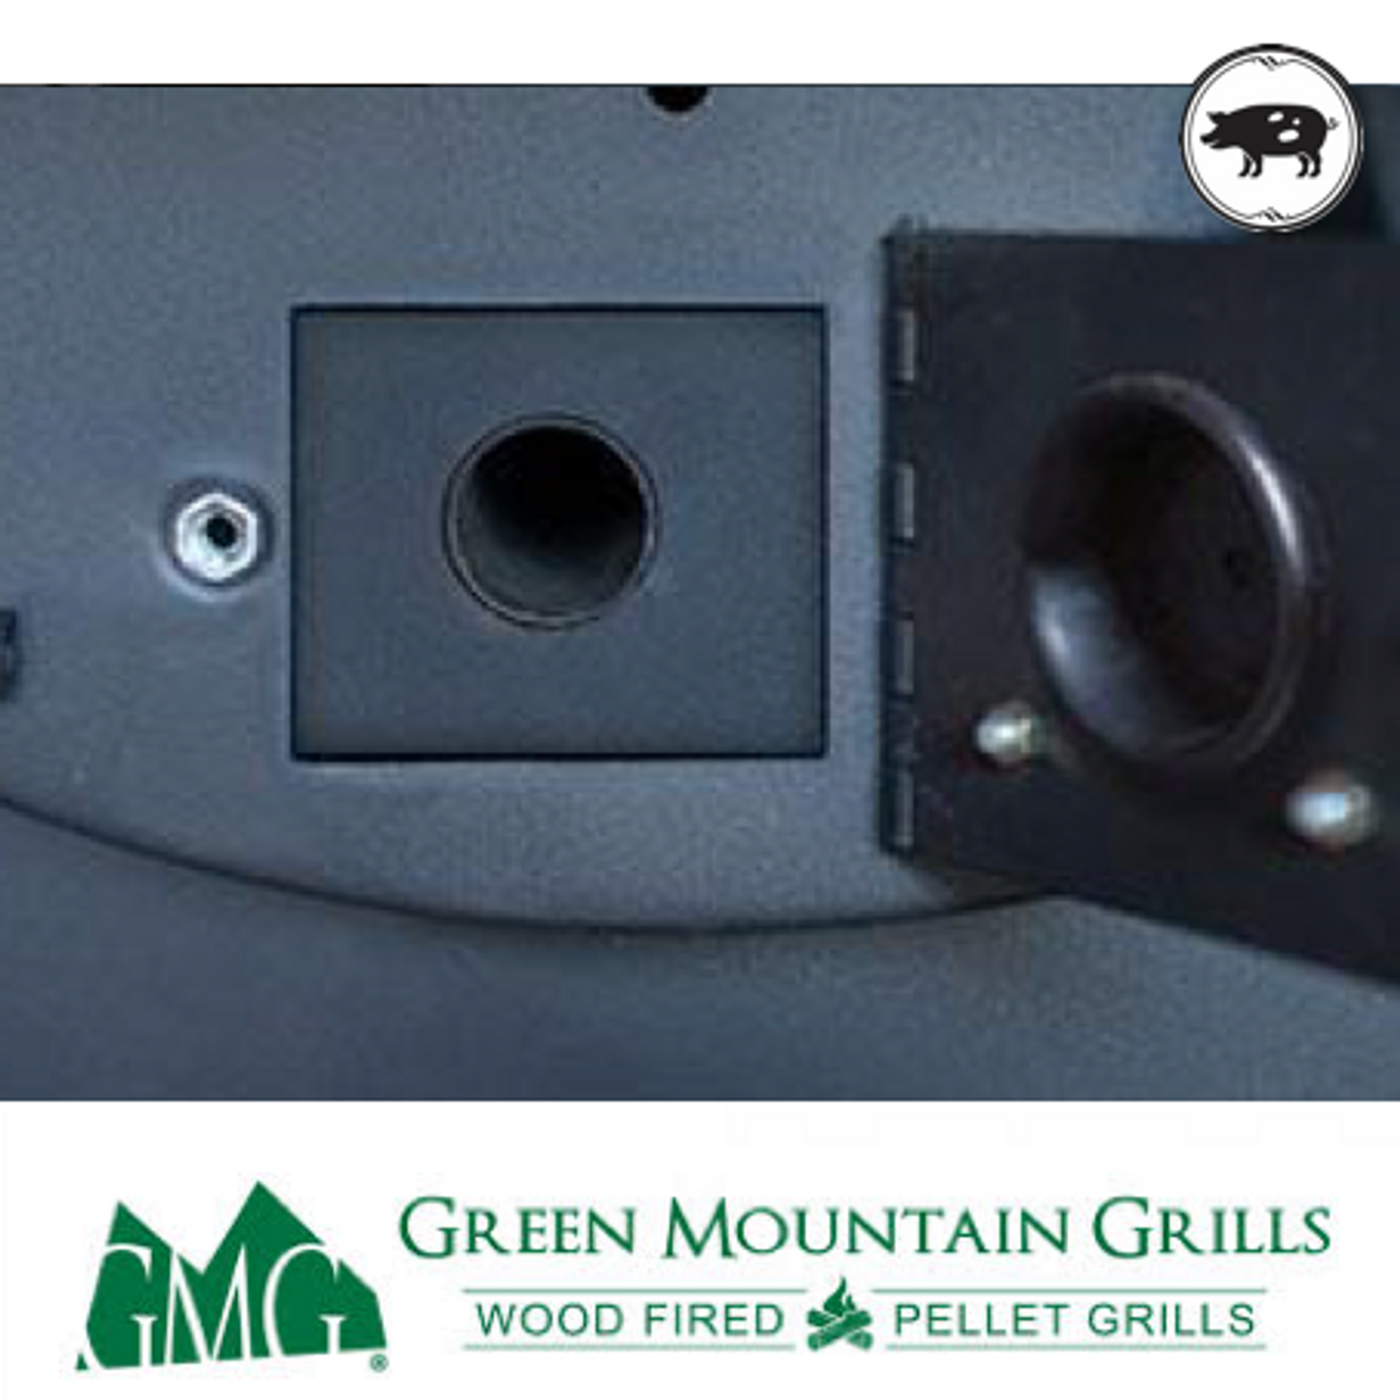 GMG - Jim Bowie Prime+ Pellet Grill with Stainless Steel Hood